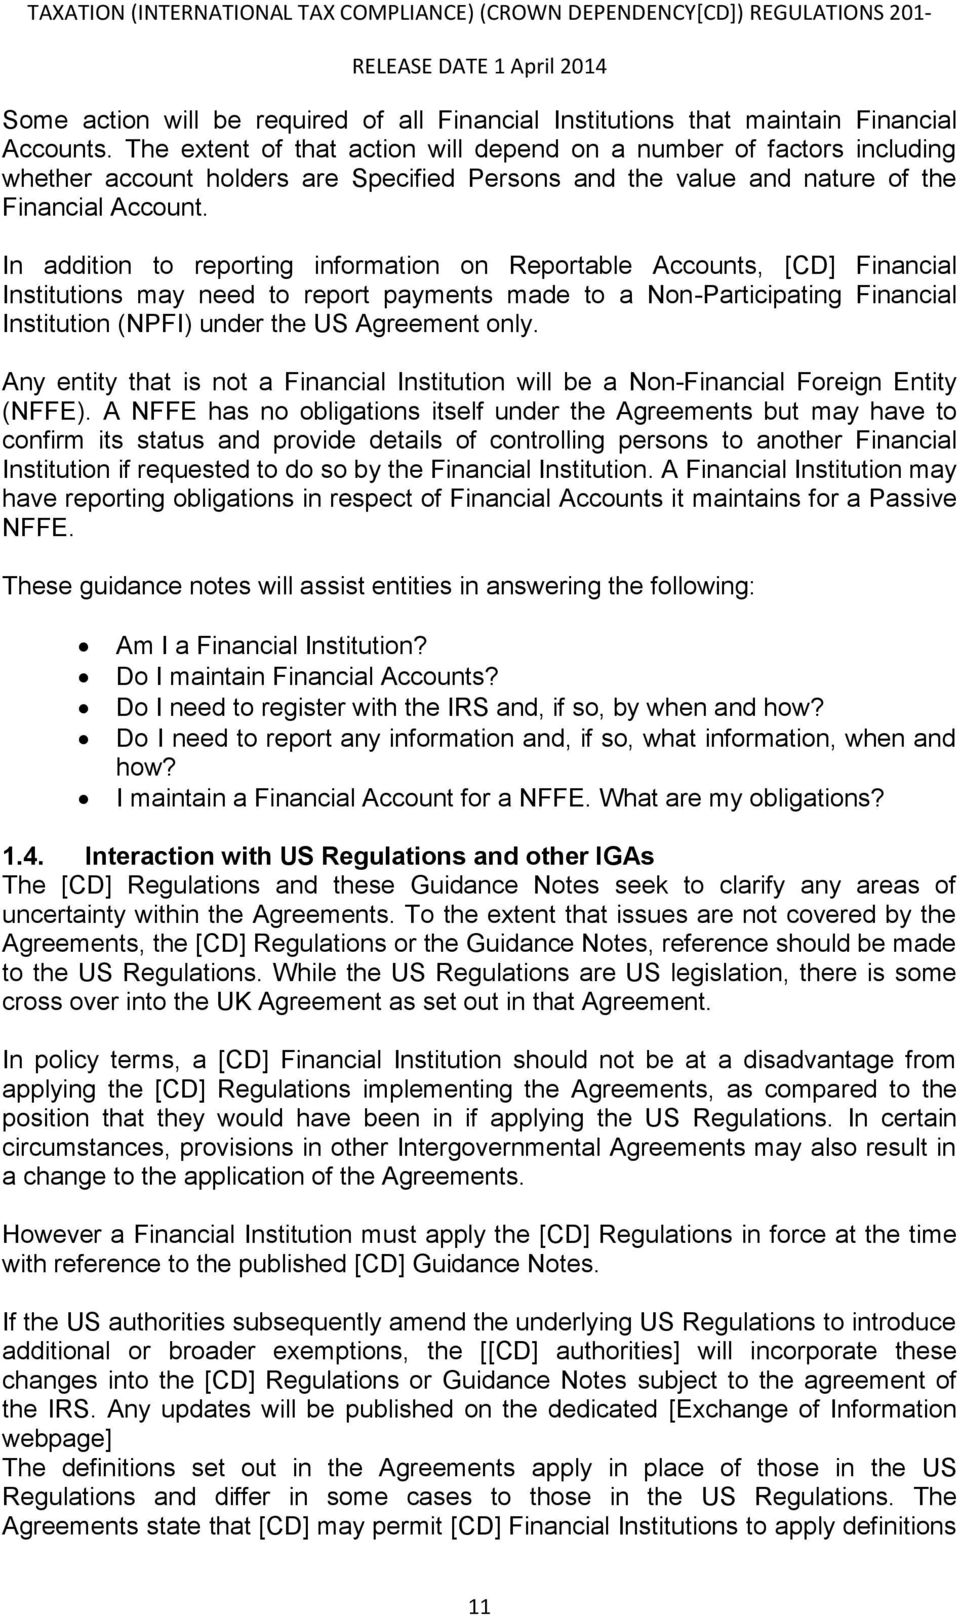 In addition to reporting information on Reportable Accounts, [CD] Financial Institutions may need to report payments made to a Non-Participating Financial Institution (NPFI) under the US Agreement